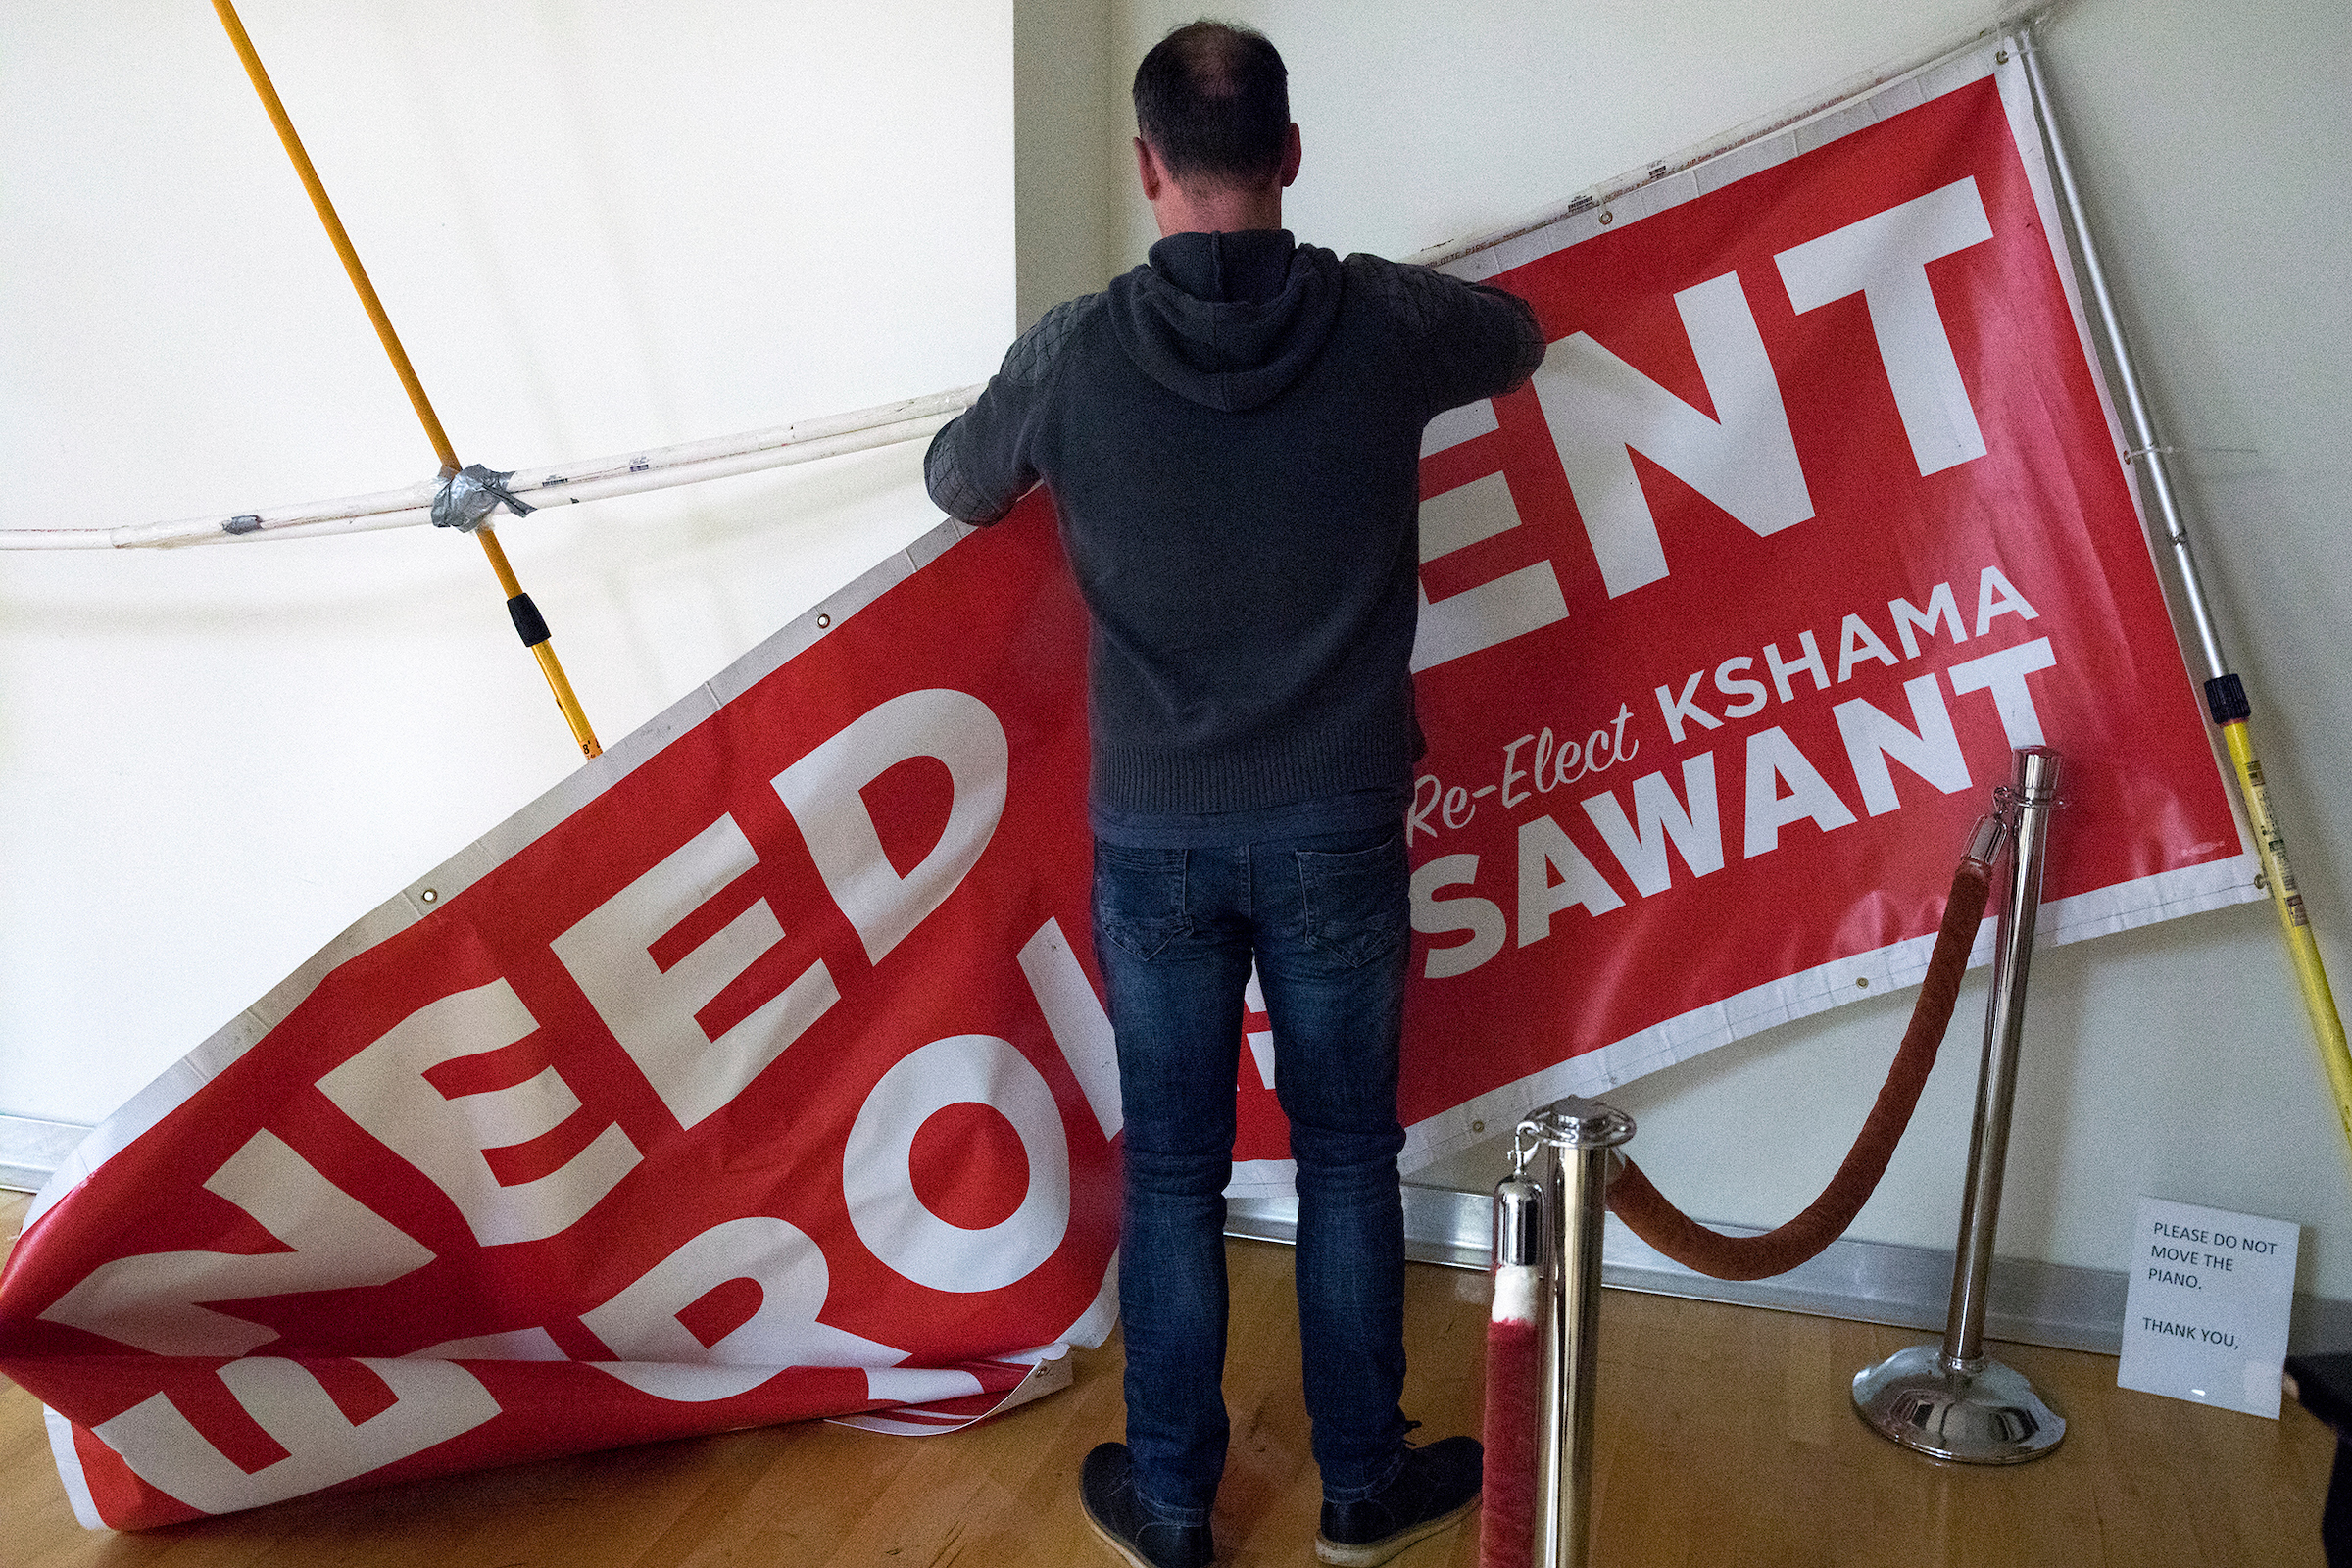 Campaign volunteer Michael O'Brien breaks down a Seattle City Councilmember Kshama Sawant sign.